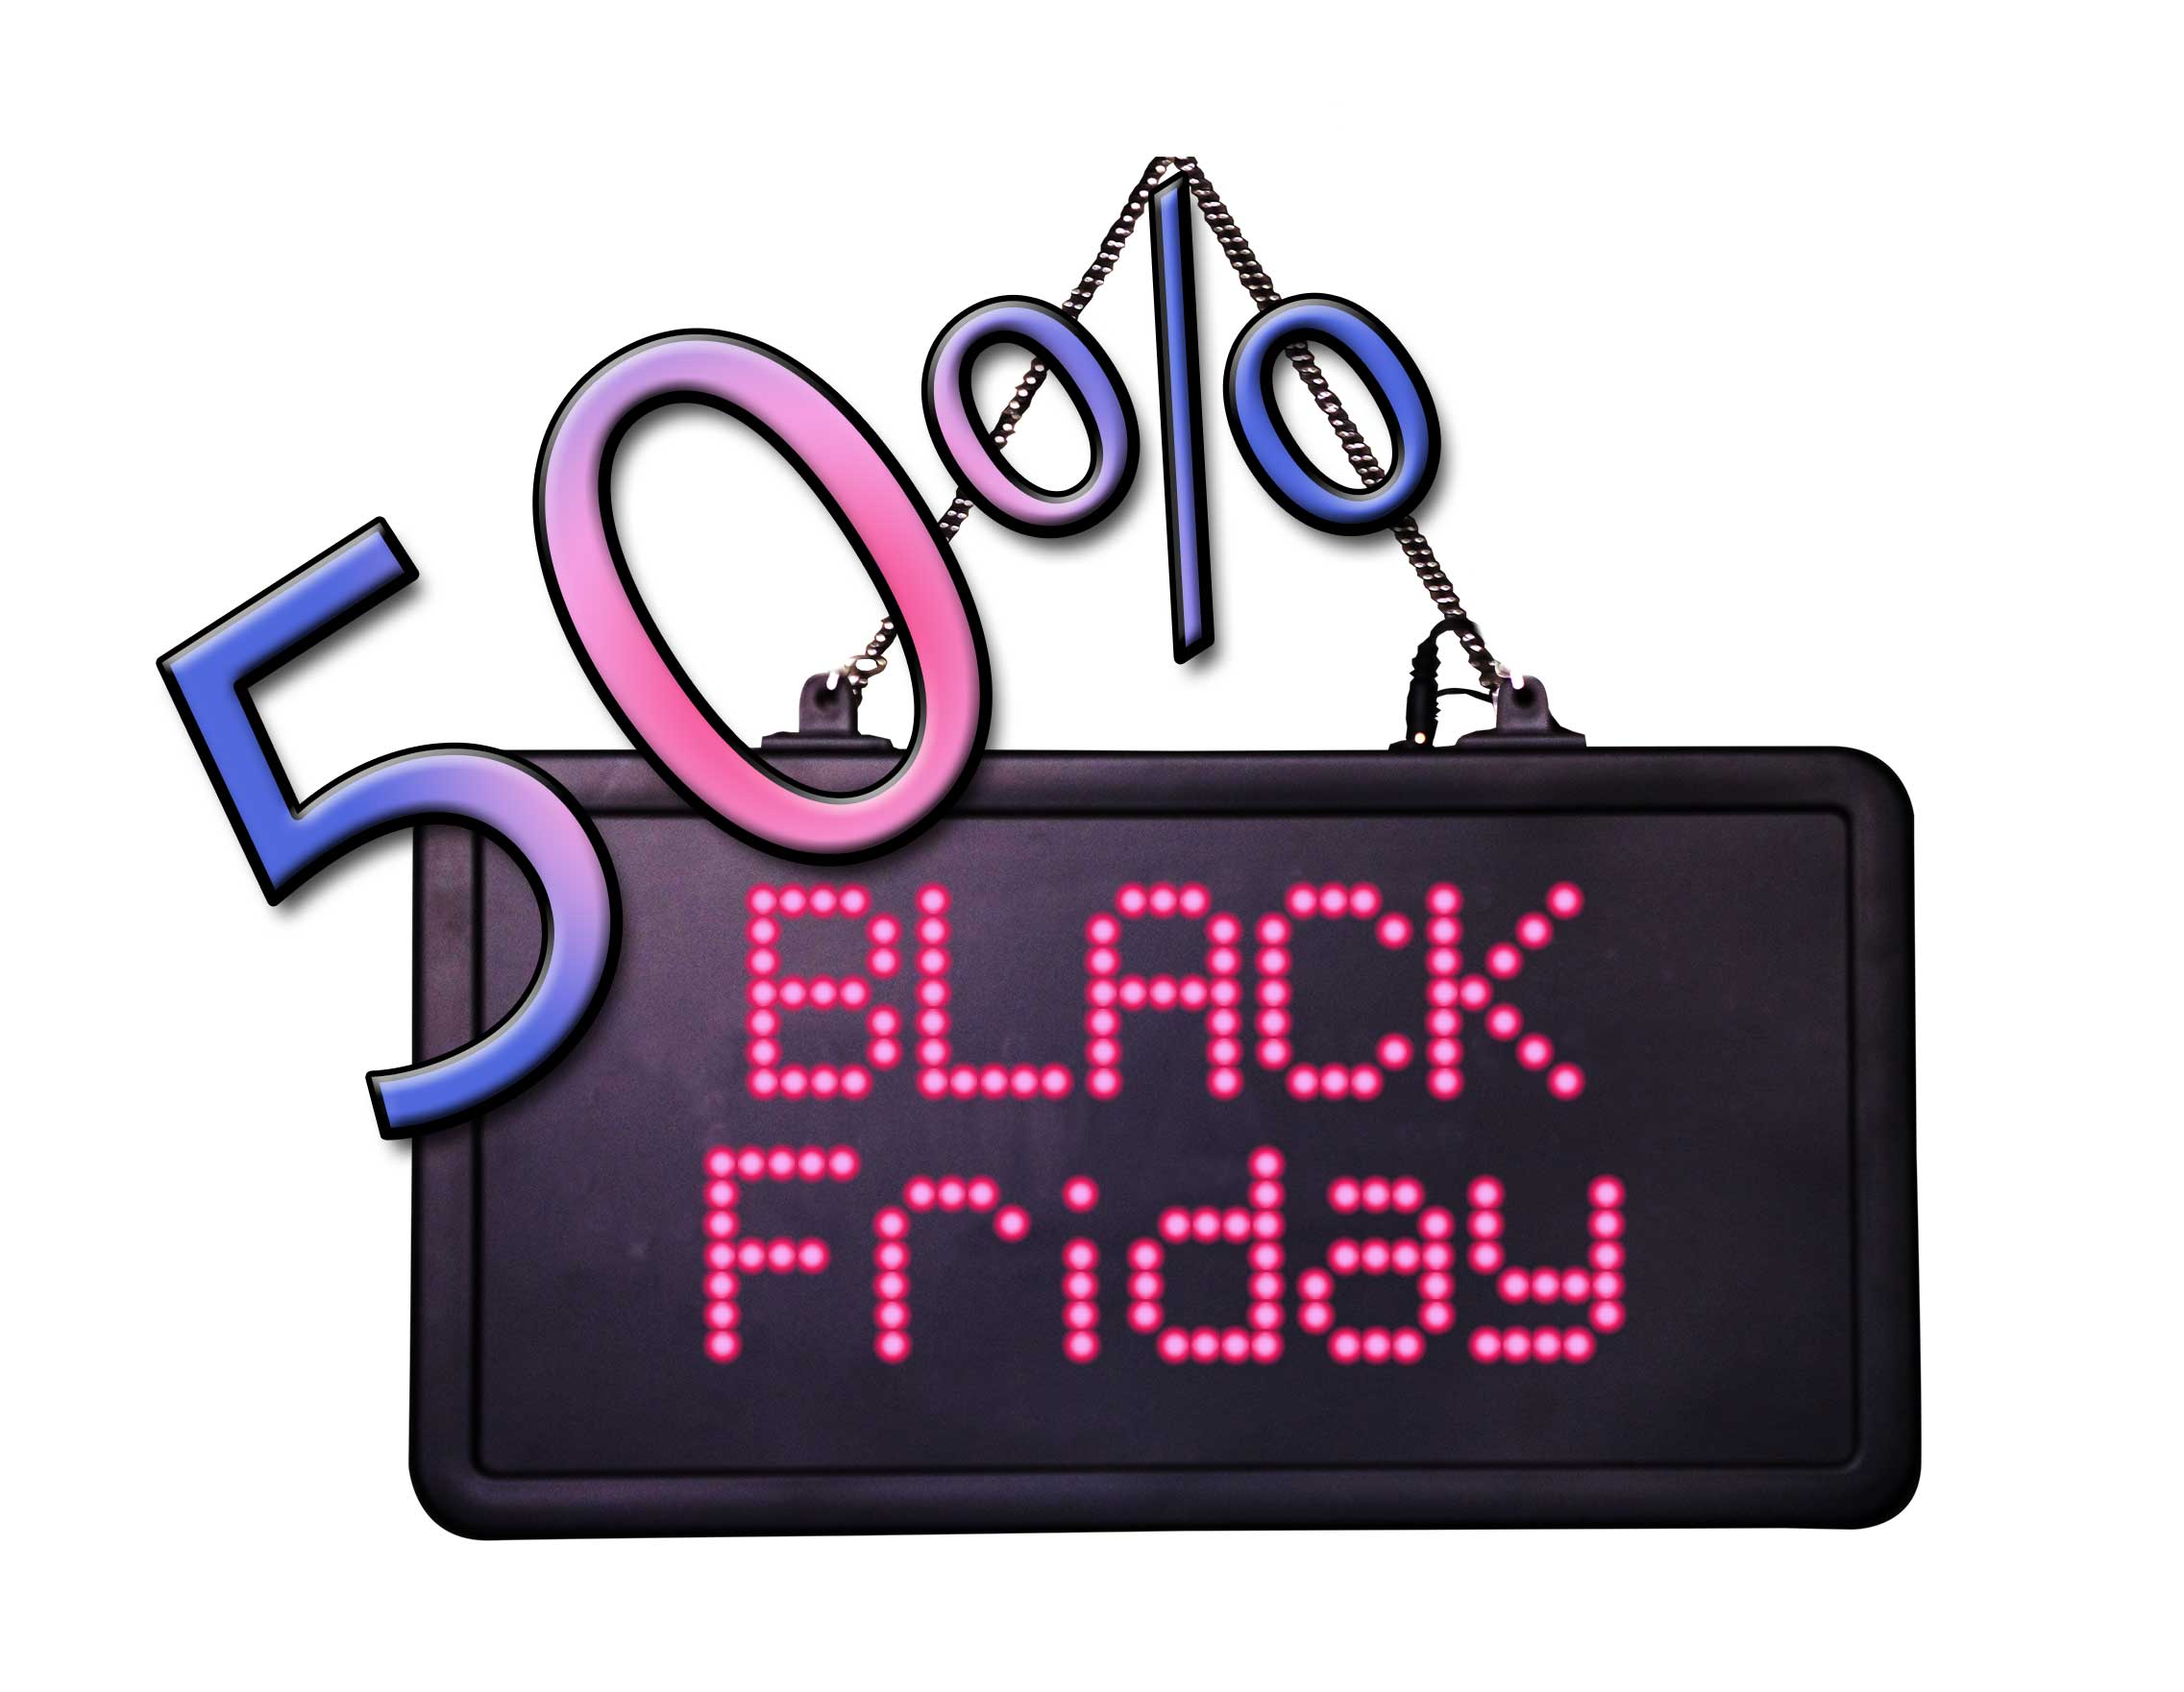 BlackFriday2019 - 50% off